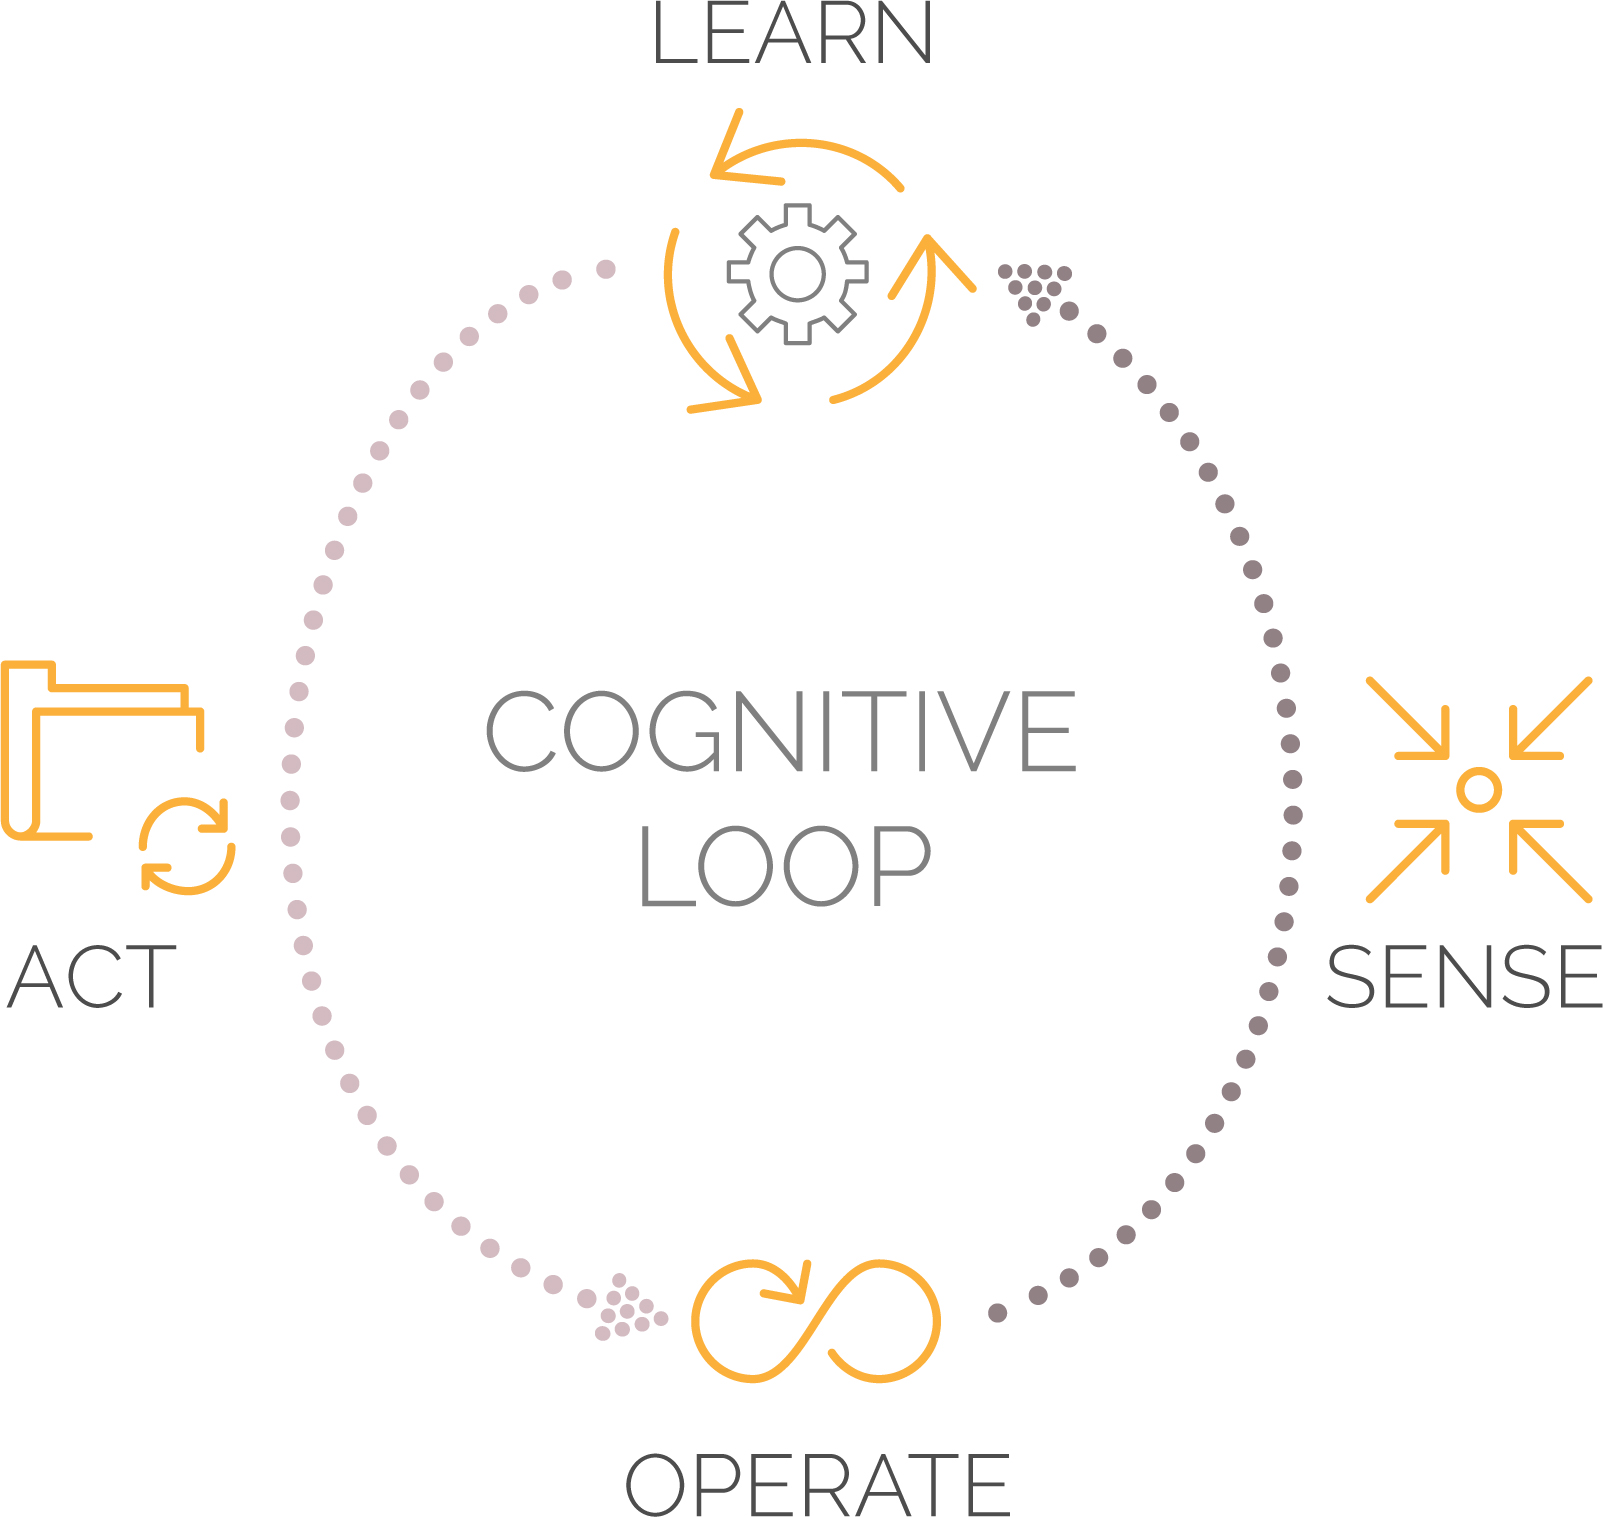 Software's cognitive capabilities helps companies adapt to